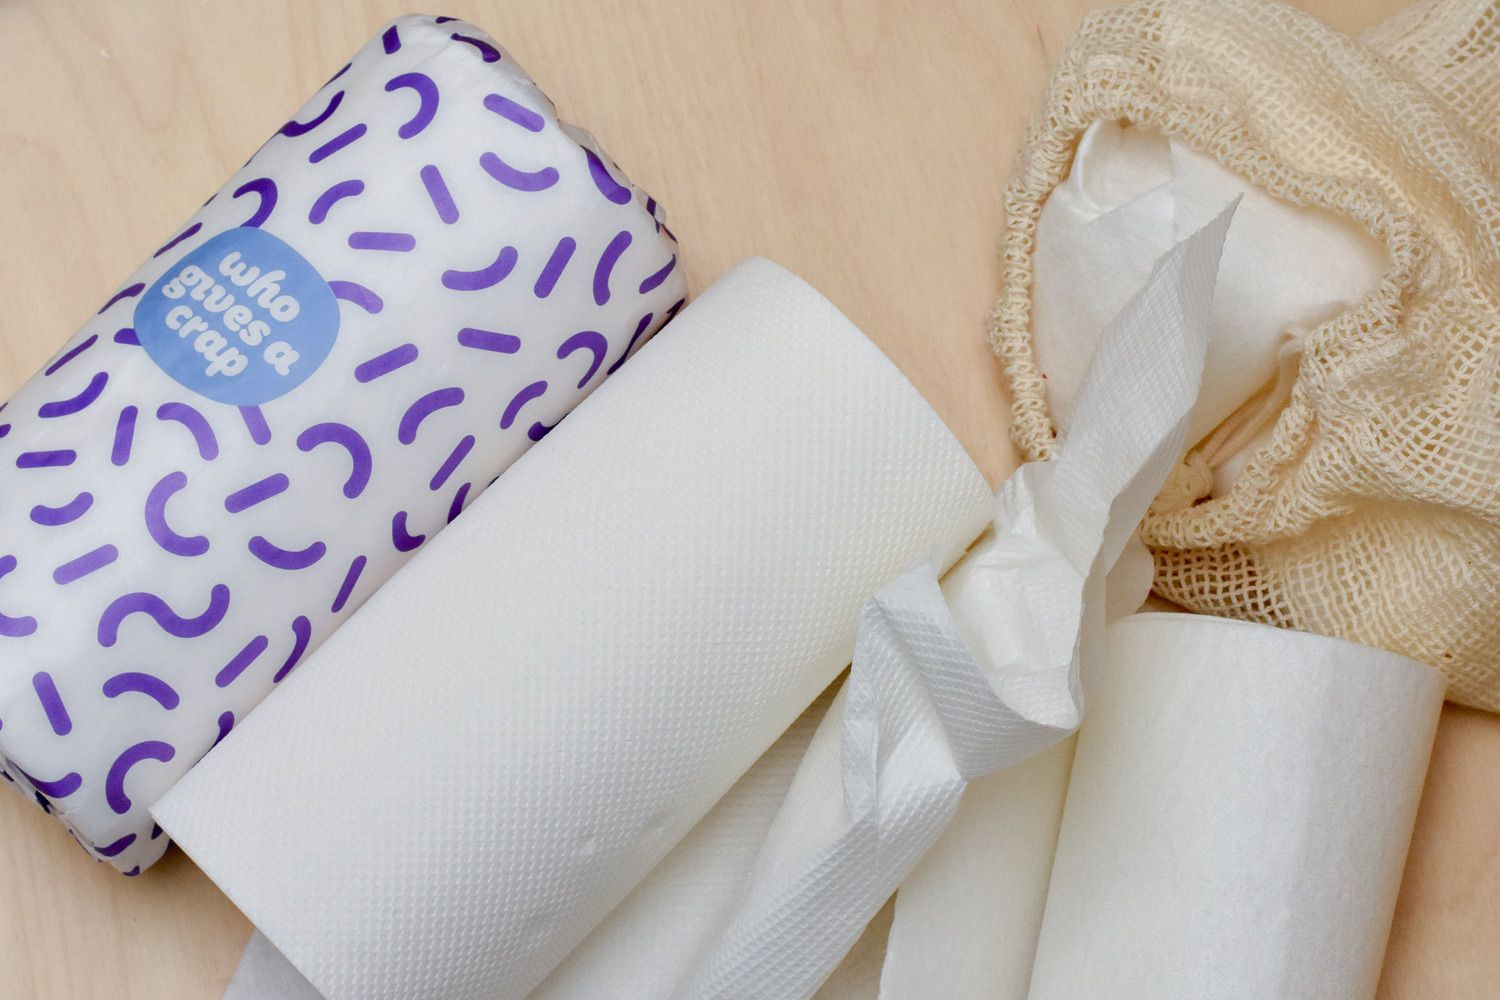 KITCHEN ROLL - There are two things we do differently now.Firstly, we've got a roll of re-usable bamboo cloths. Sized the same as kitchen paper, each sheet can be washed 80 times and then composted. I use this for all sorts of things - DIY cleansing face-wipes, baby-wipes (for my nine year old 'babies) as well as all the usual kitchen and bathroom jobs. I wash it and store it in a cotton mesh produce bag, and stuff the dirties in a jam jar under the sink.We also keep a few rolls of back-up regular kitchen paper. It's better than normal kitchen paper because it's made from recycled paper, or super-sustainable bamboo, and packaged either in paper or compostable wrap. I'm a fan of Who Gives a Crap and Ecoleaf.